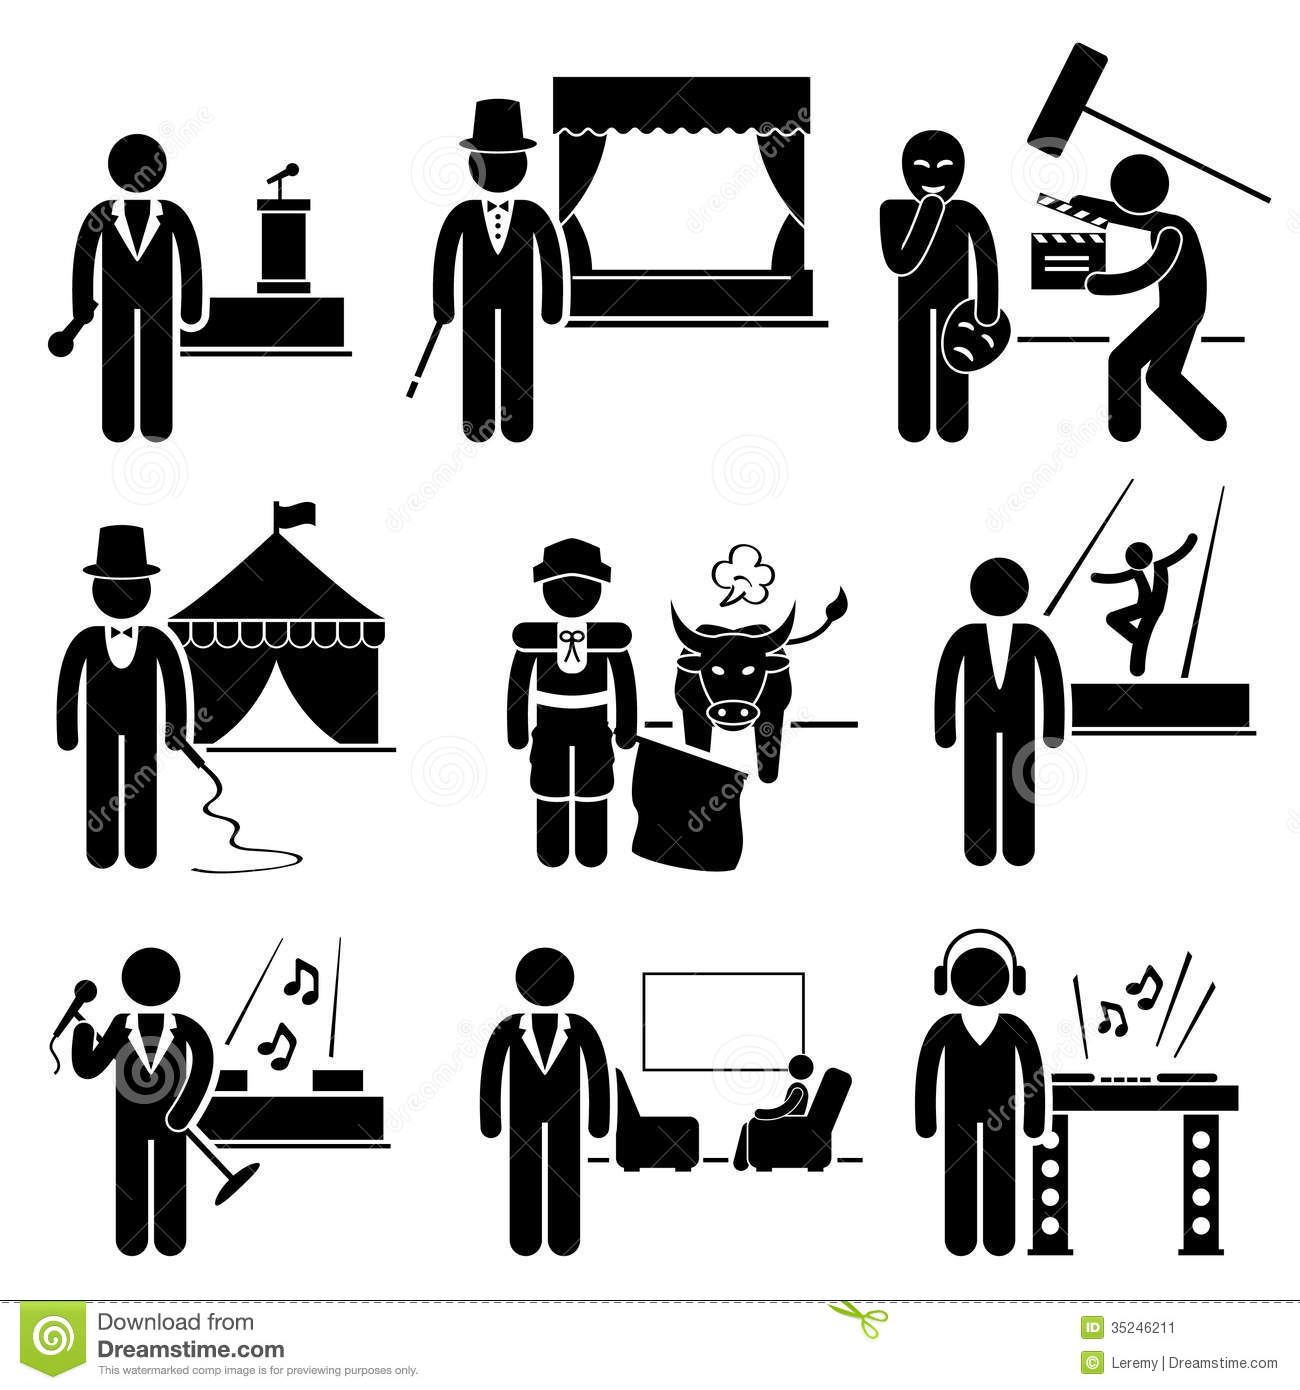 Entertainment Artist Jobs Occupations Careers Stock Vector